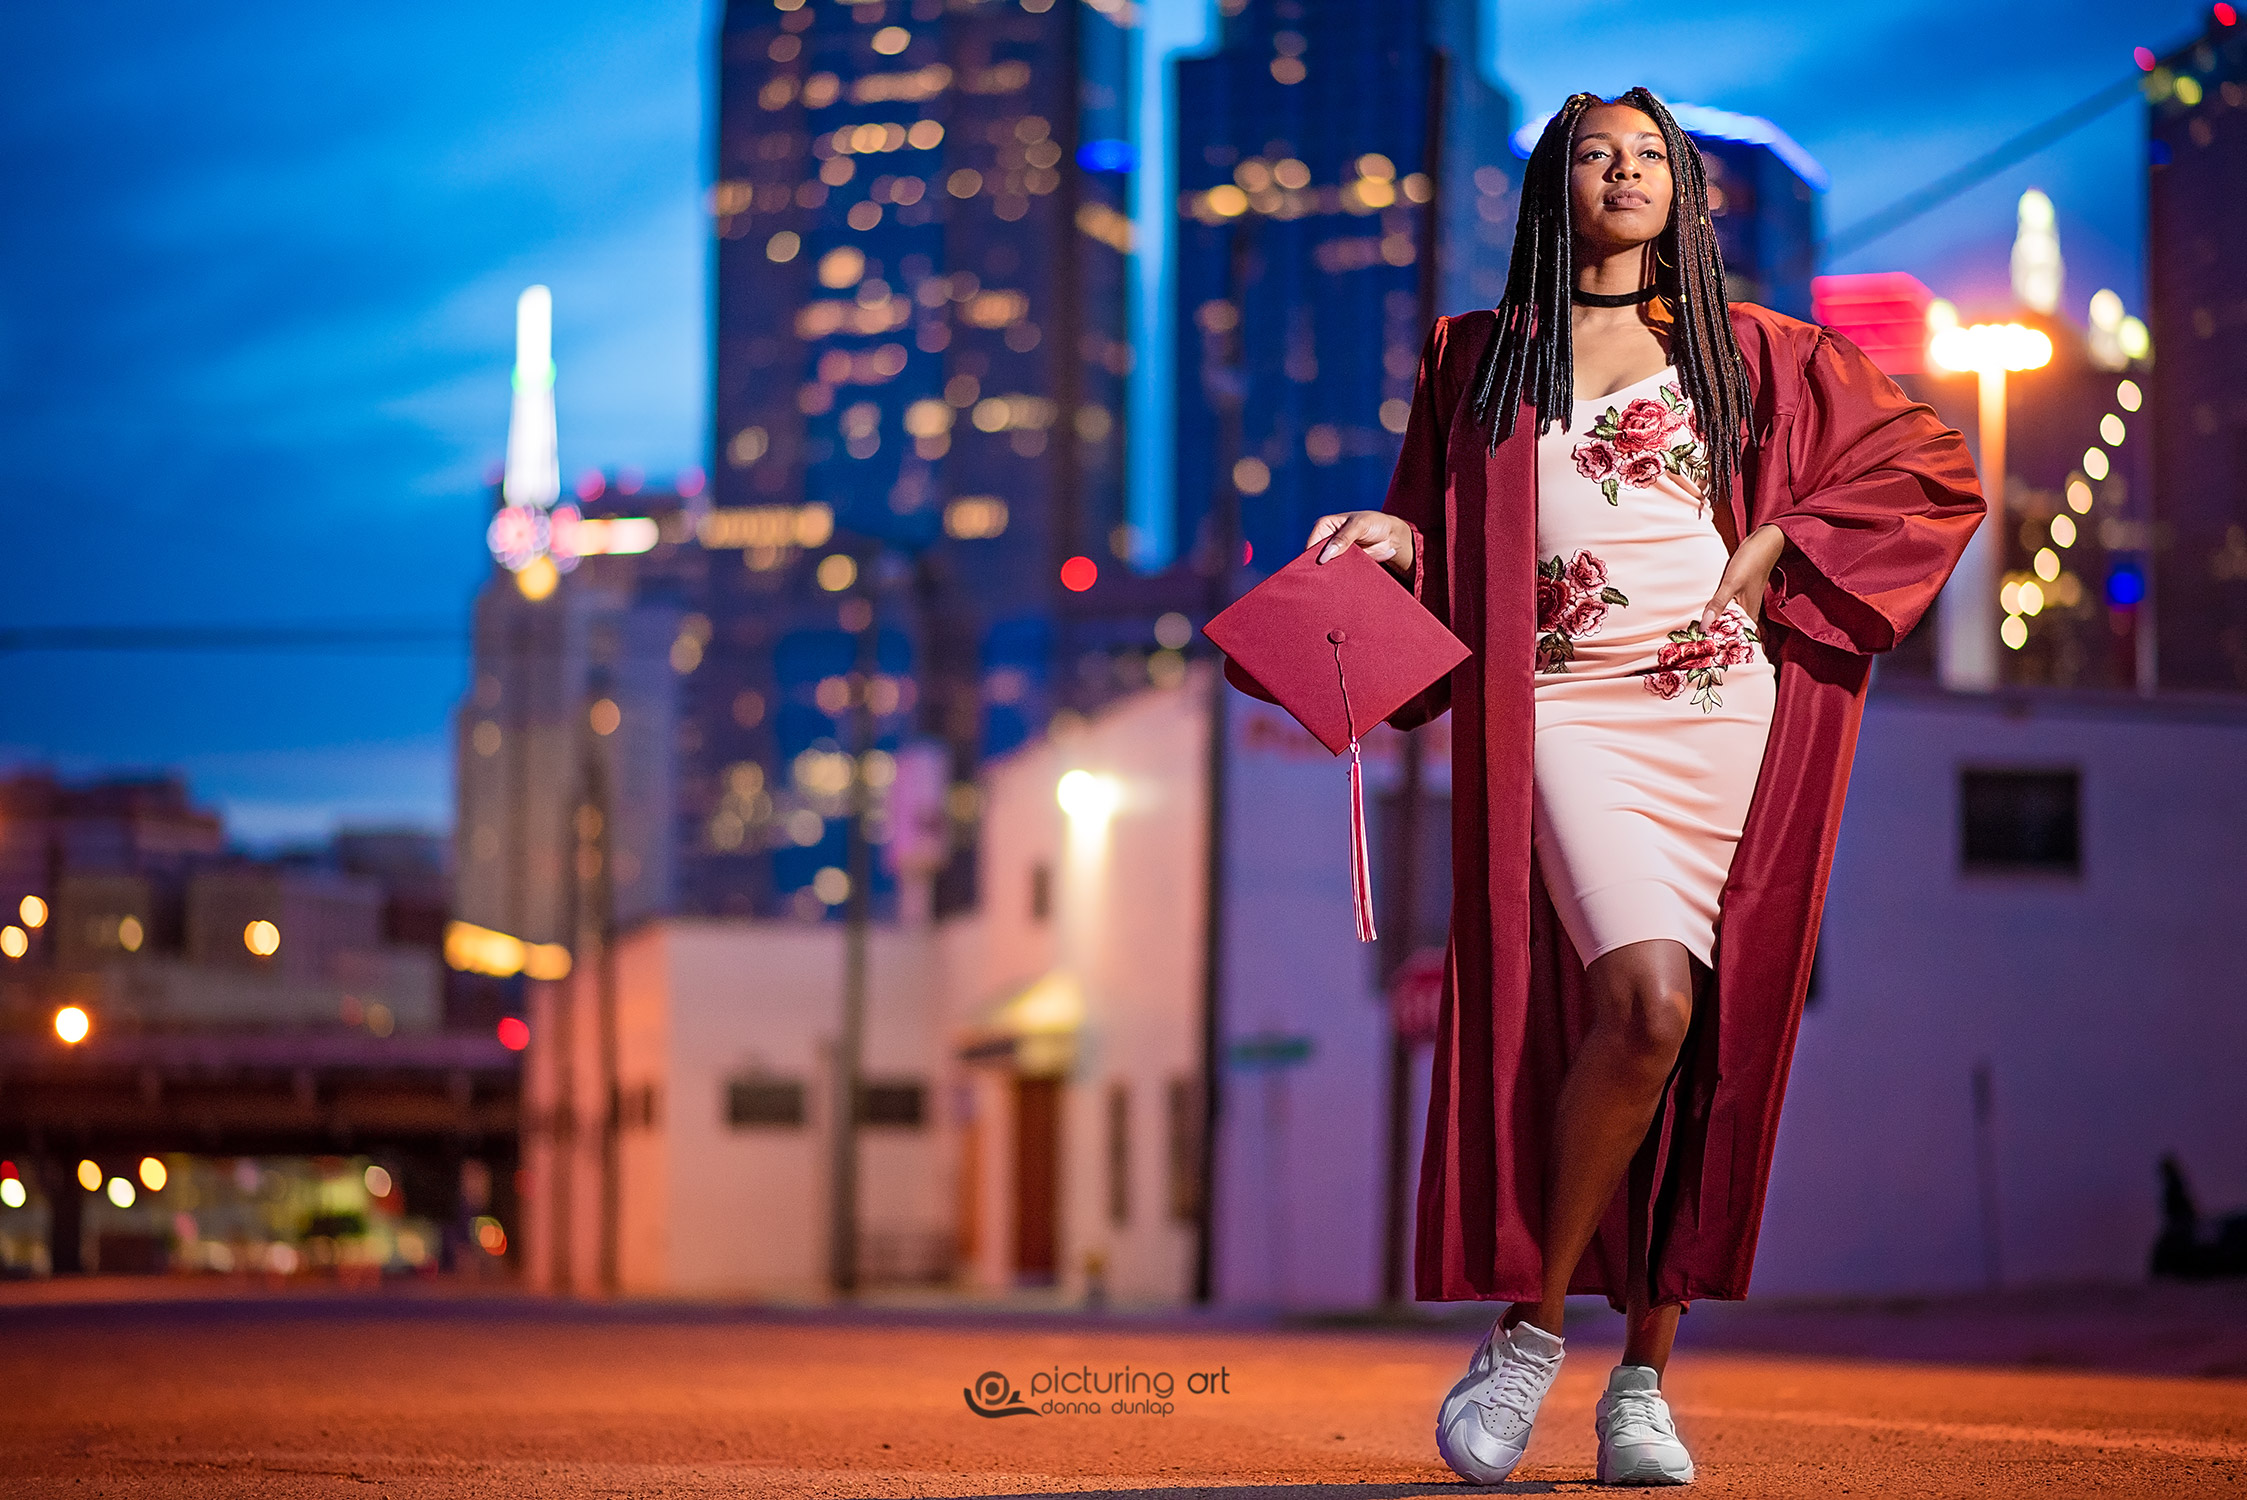 dallas, dallas texas, dallas tx, urban, skyline, night, night lights, graduate cap, senior, senior pic, senior pictures, grad, graduate, girl, graduation cap, fusion